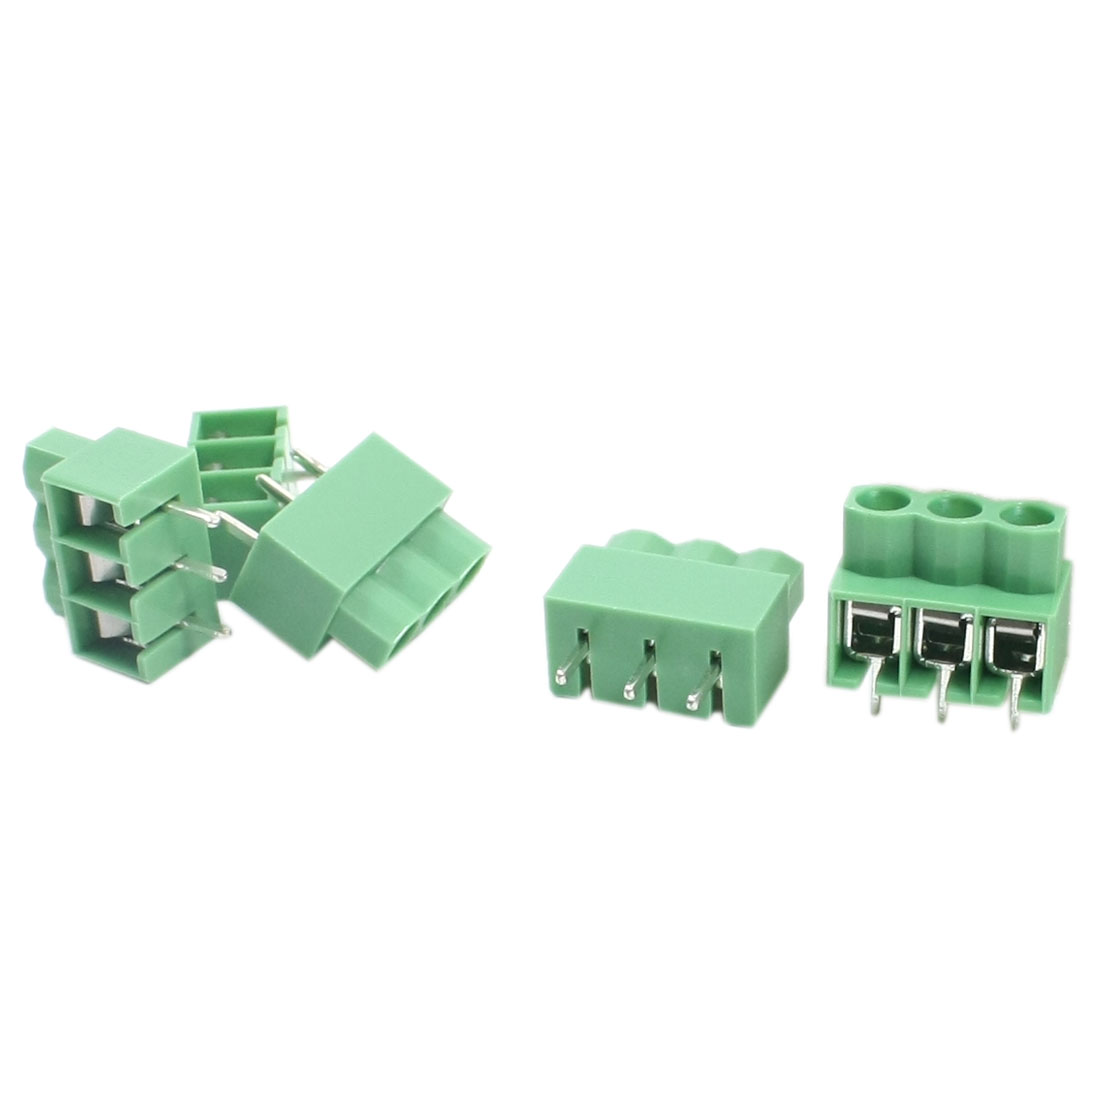 5Pcs KF166-3P 300V 2A 5mm Spacing 3Pole in Through Hole Mounting Green PCB Screw Terminal Barrier Block Connector